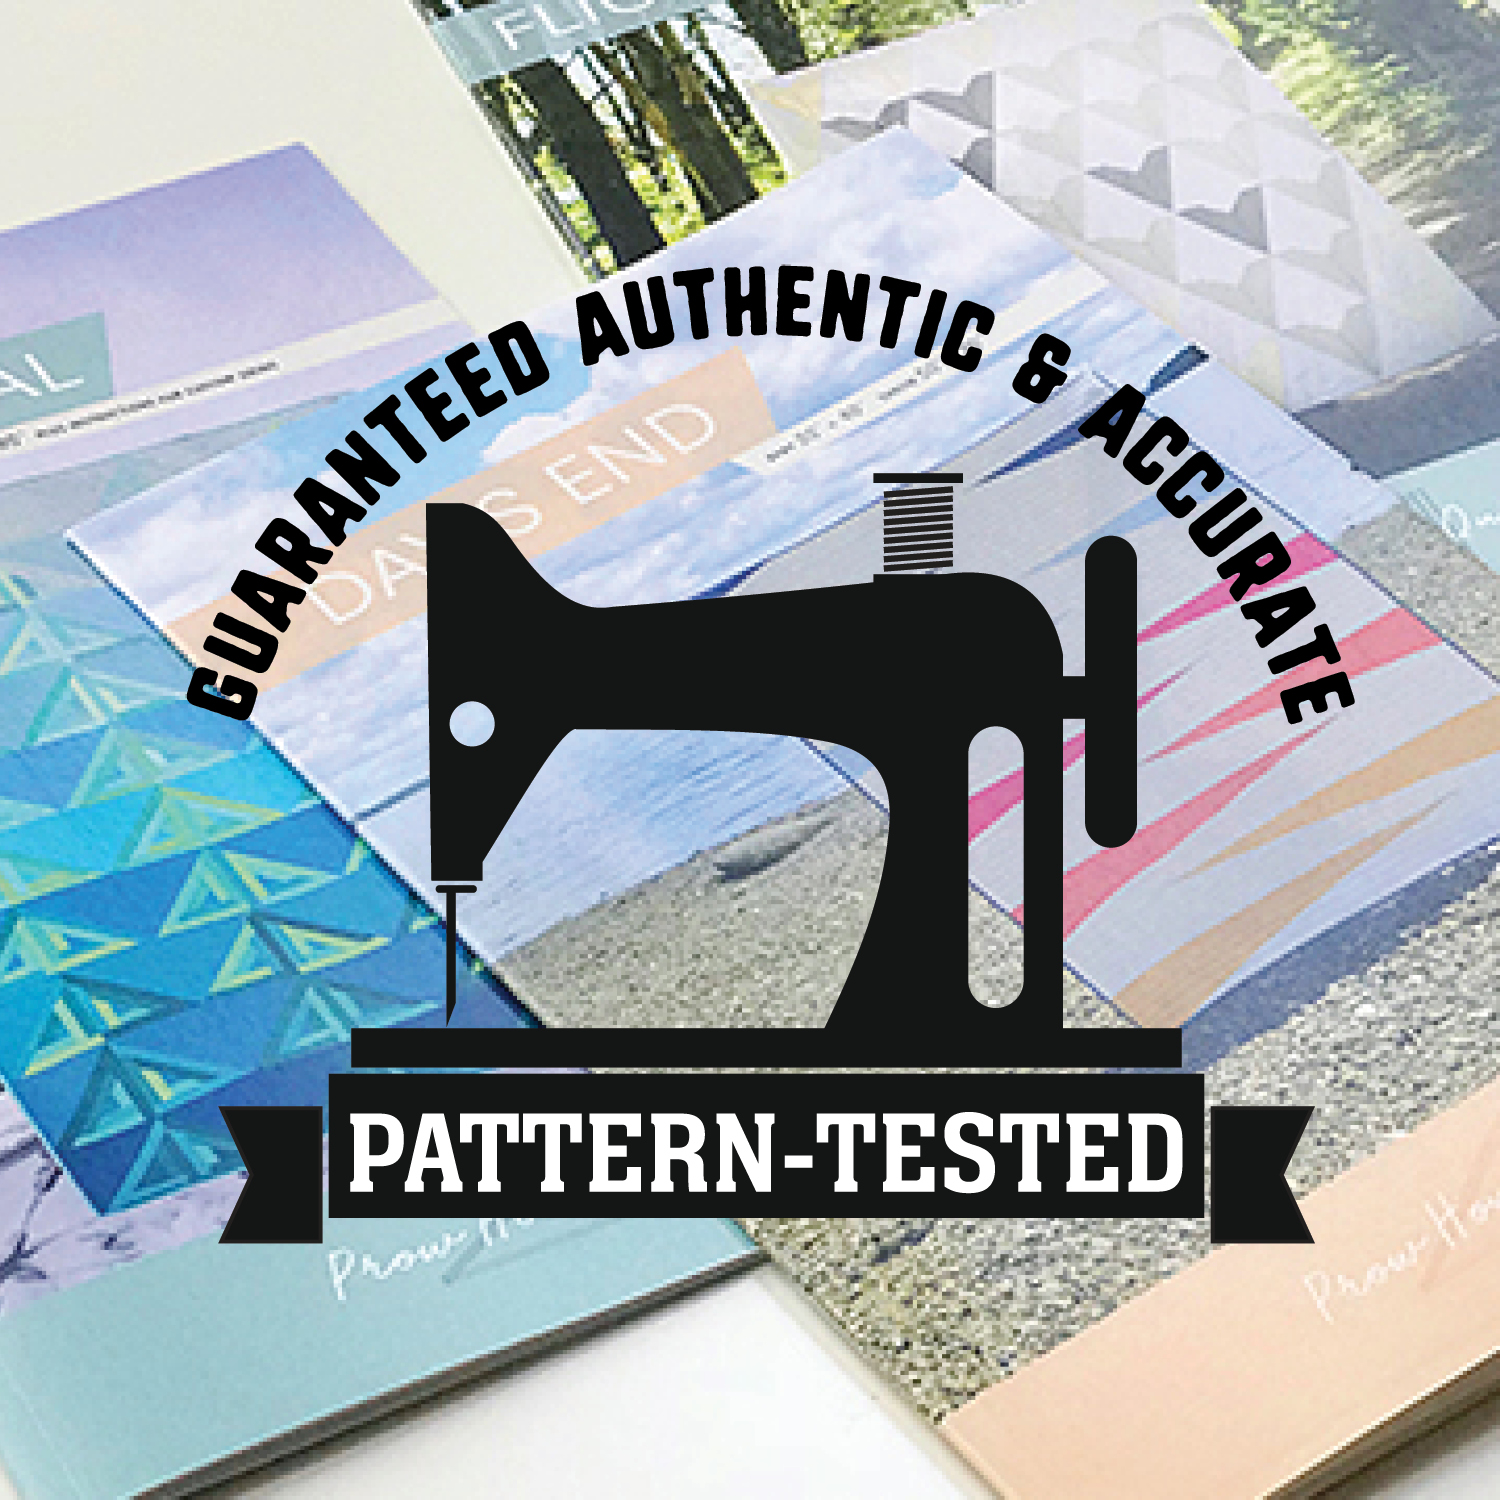 PatternTestedLogo_Shop.jpg